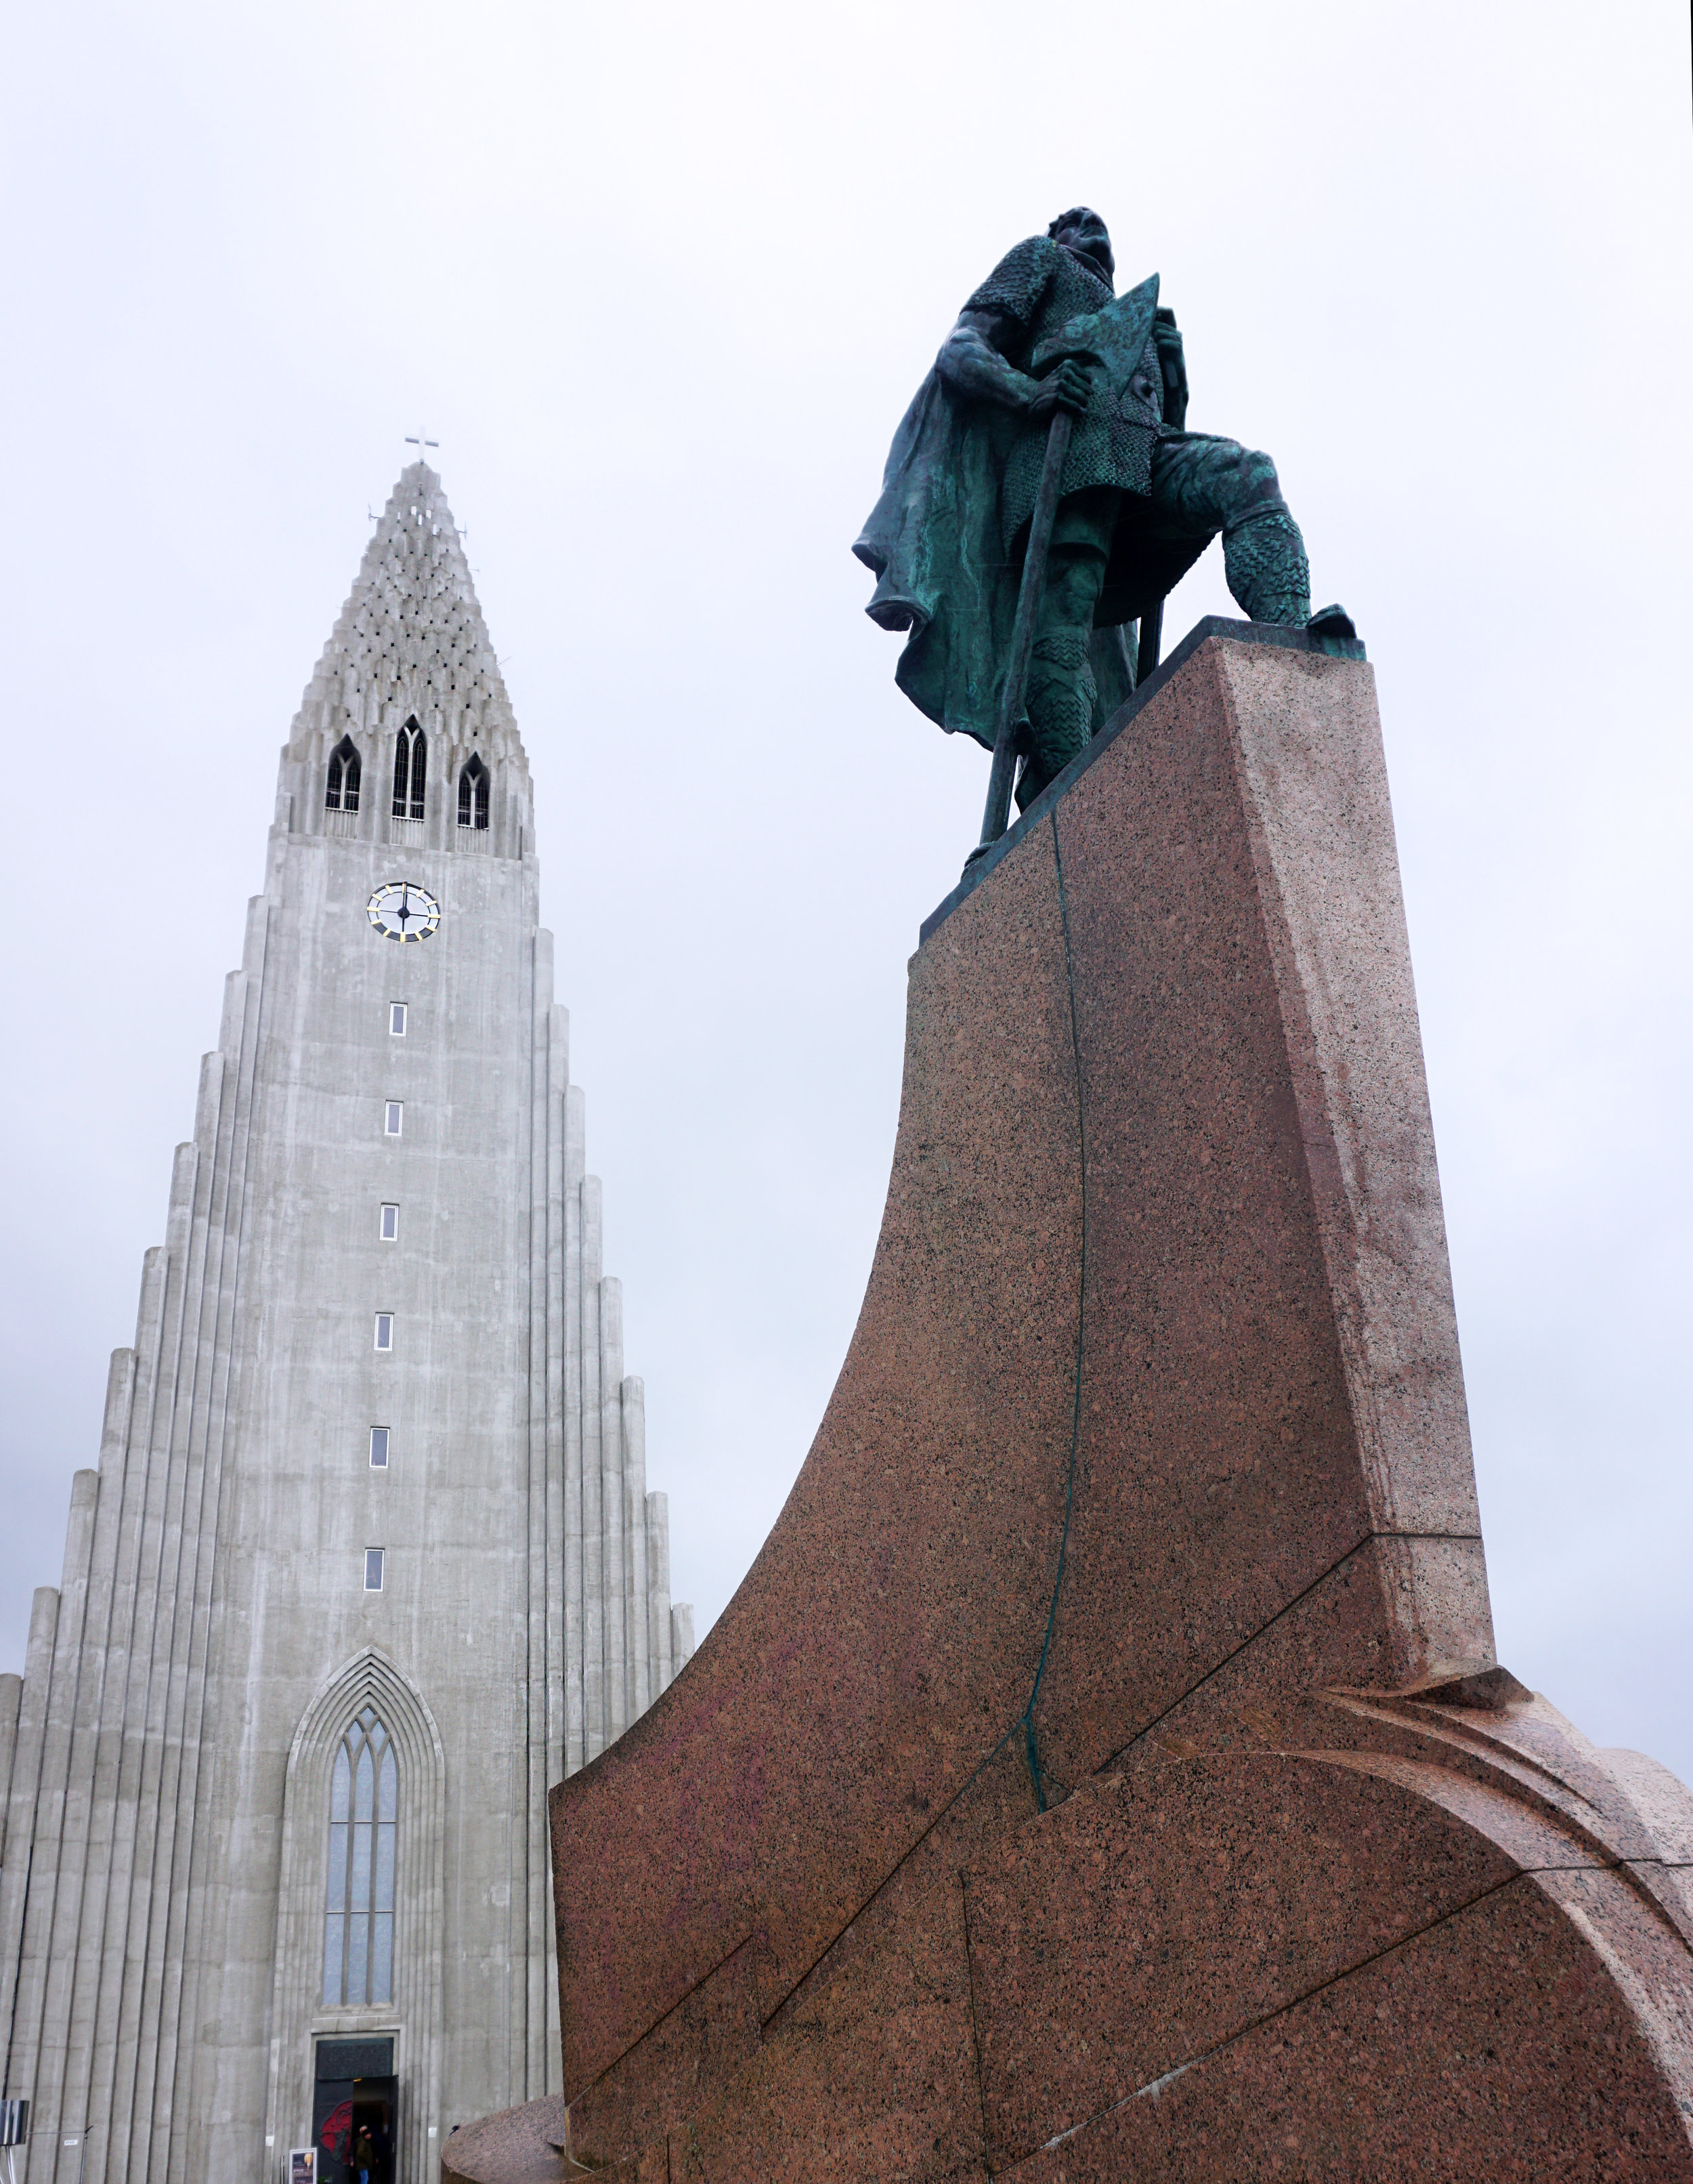 Hallgrímskirkja - is one of the tallest structures in Iceland and sits in the center of Reykjavik. Its design is meant to be inspired by Iceland's unique landscape.